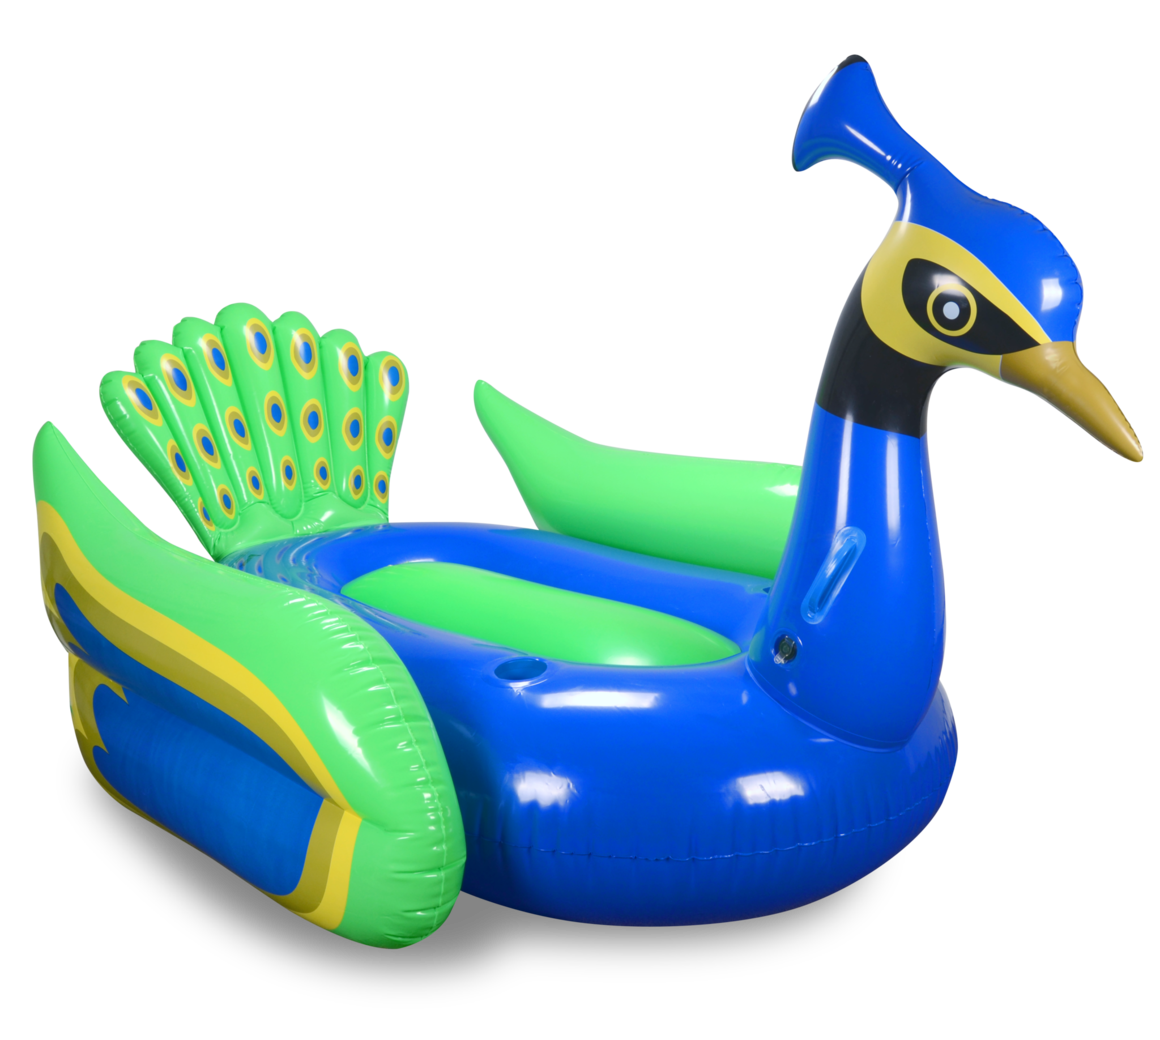 Peacock pool float by Mimosa Inc